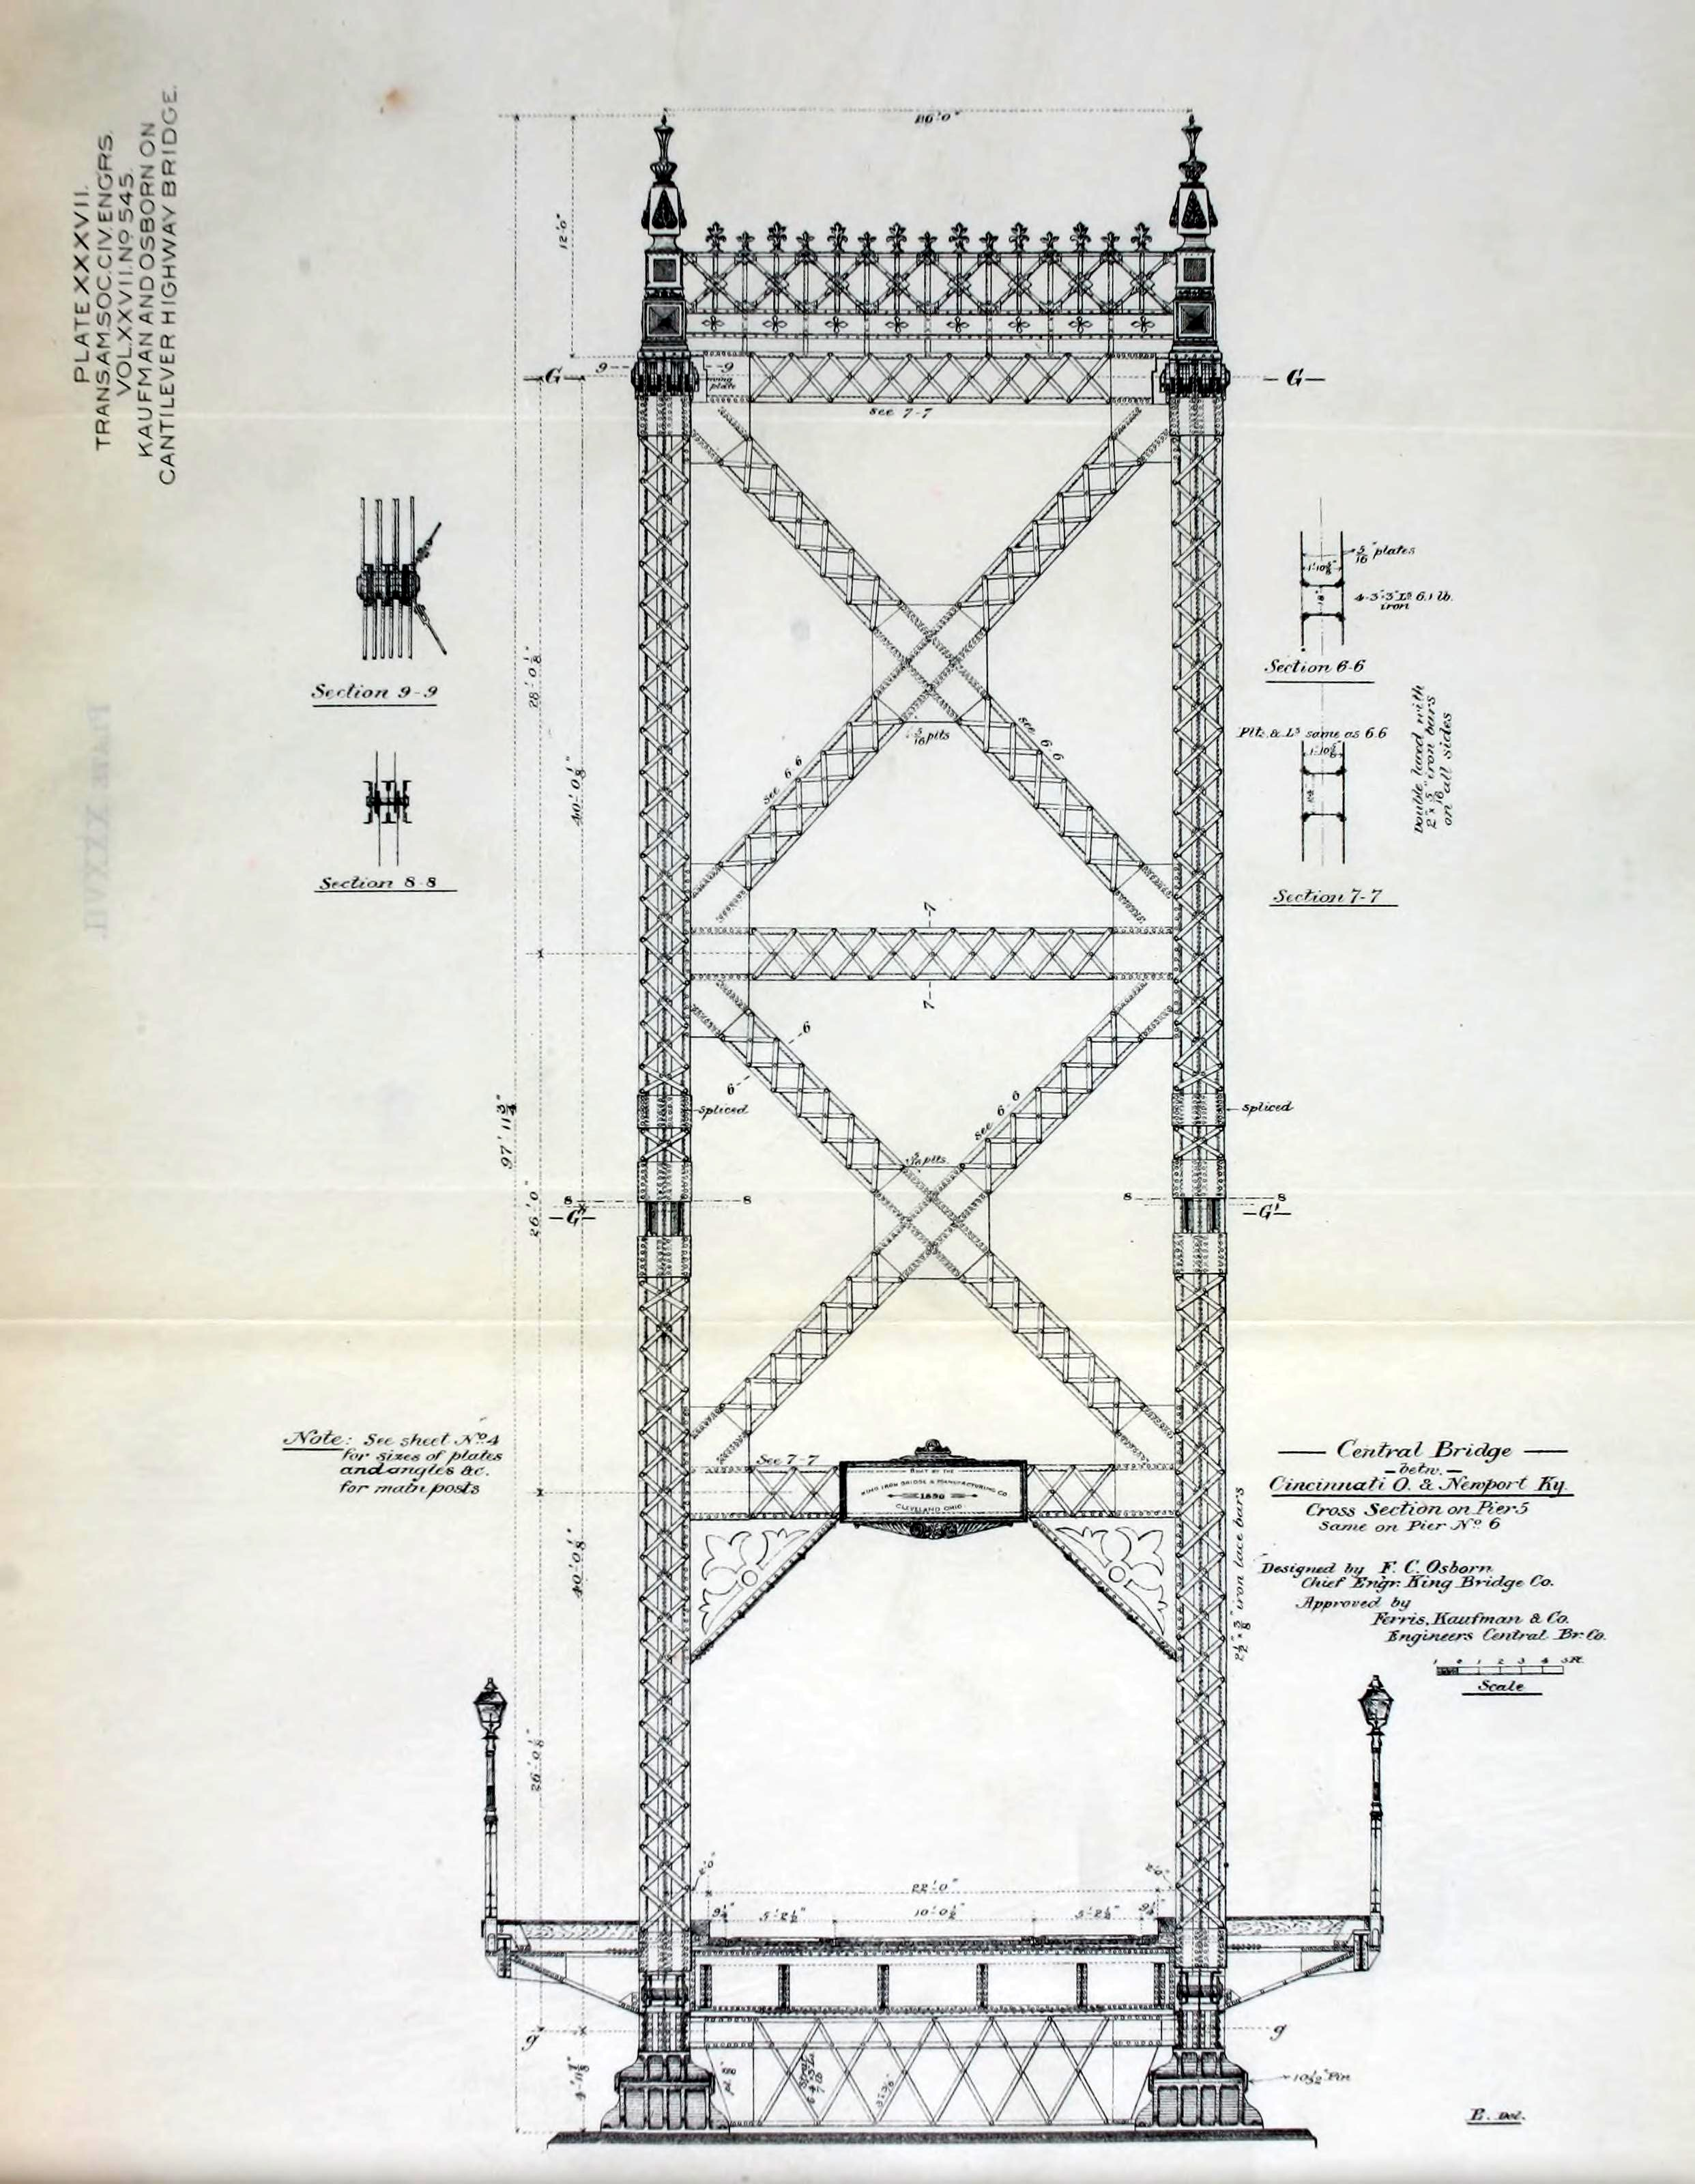 Central Bridge Truss Diagram Elevation Save In North America Only Canada Retains A Remnant Of This Key Development Period The Cantilever Waneta Photo And